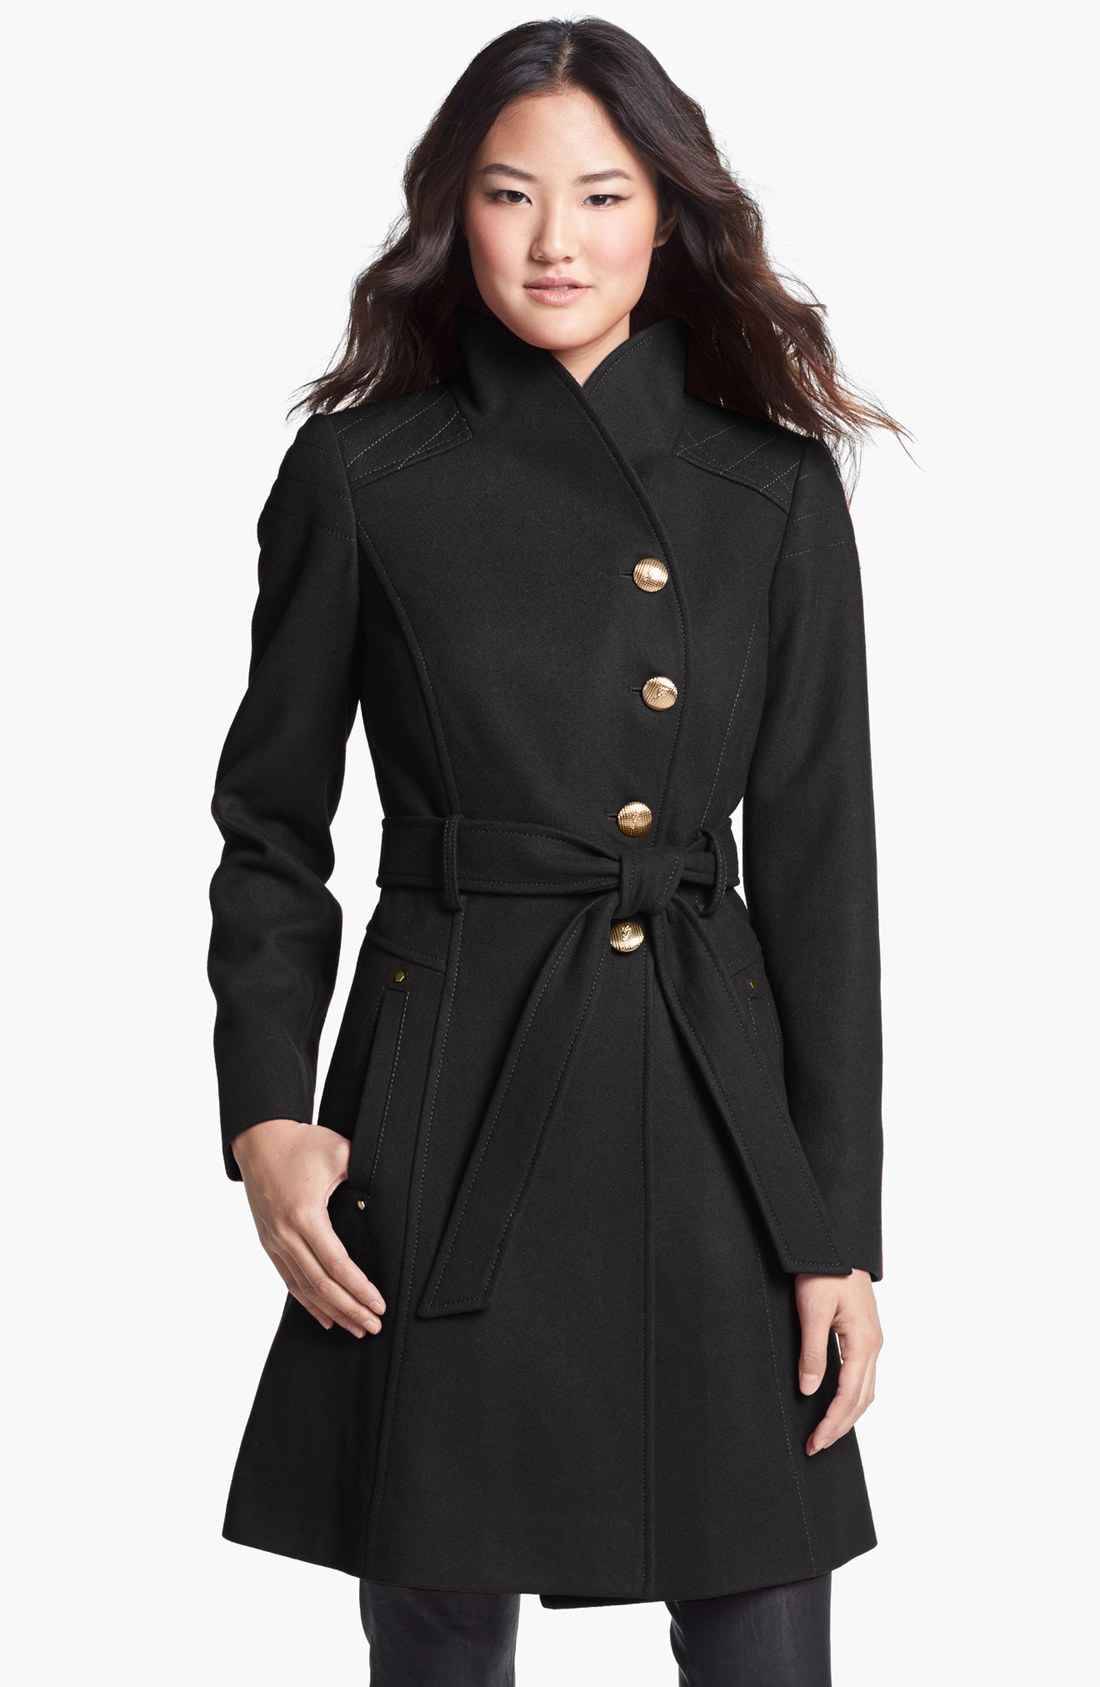 Shop for BLACK GREY 2XL Hooded Belted Wool Blend Coat online at $ and discover fashion at ditilink.gq Cheapest and Latest women & men fashion site including categories such as dresses, shoes, bags and jewelry with free shipping all over the world.